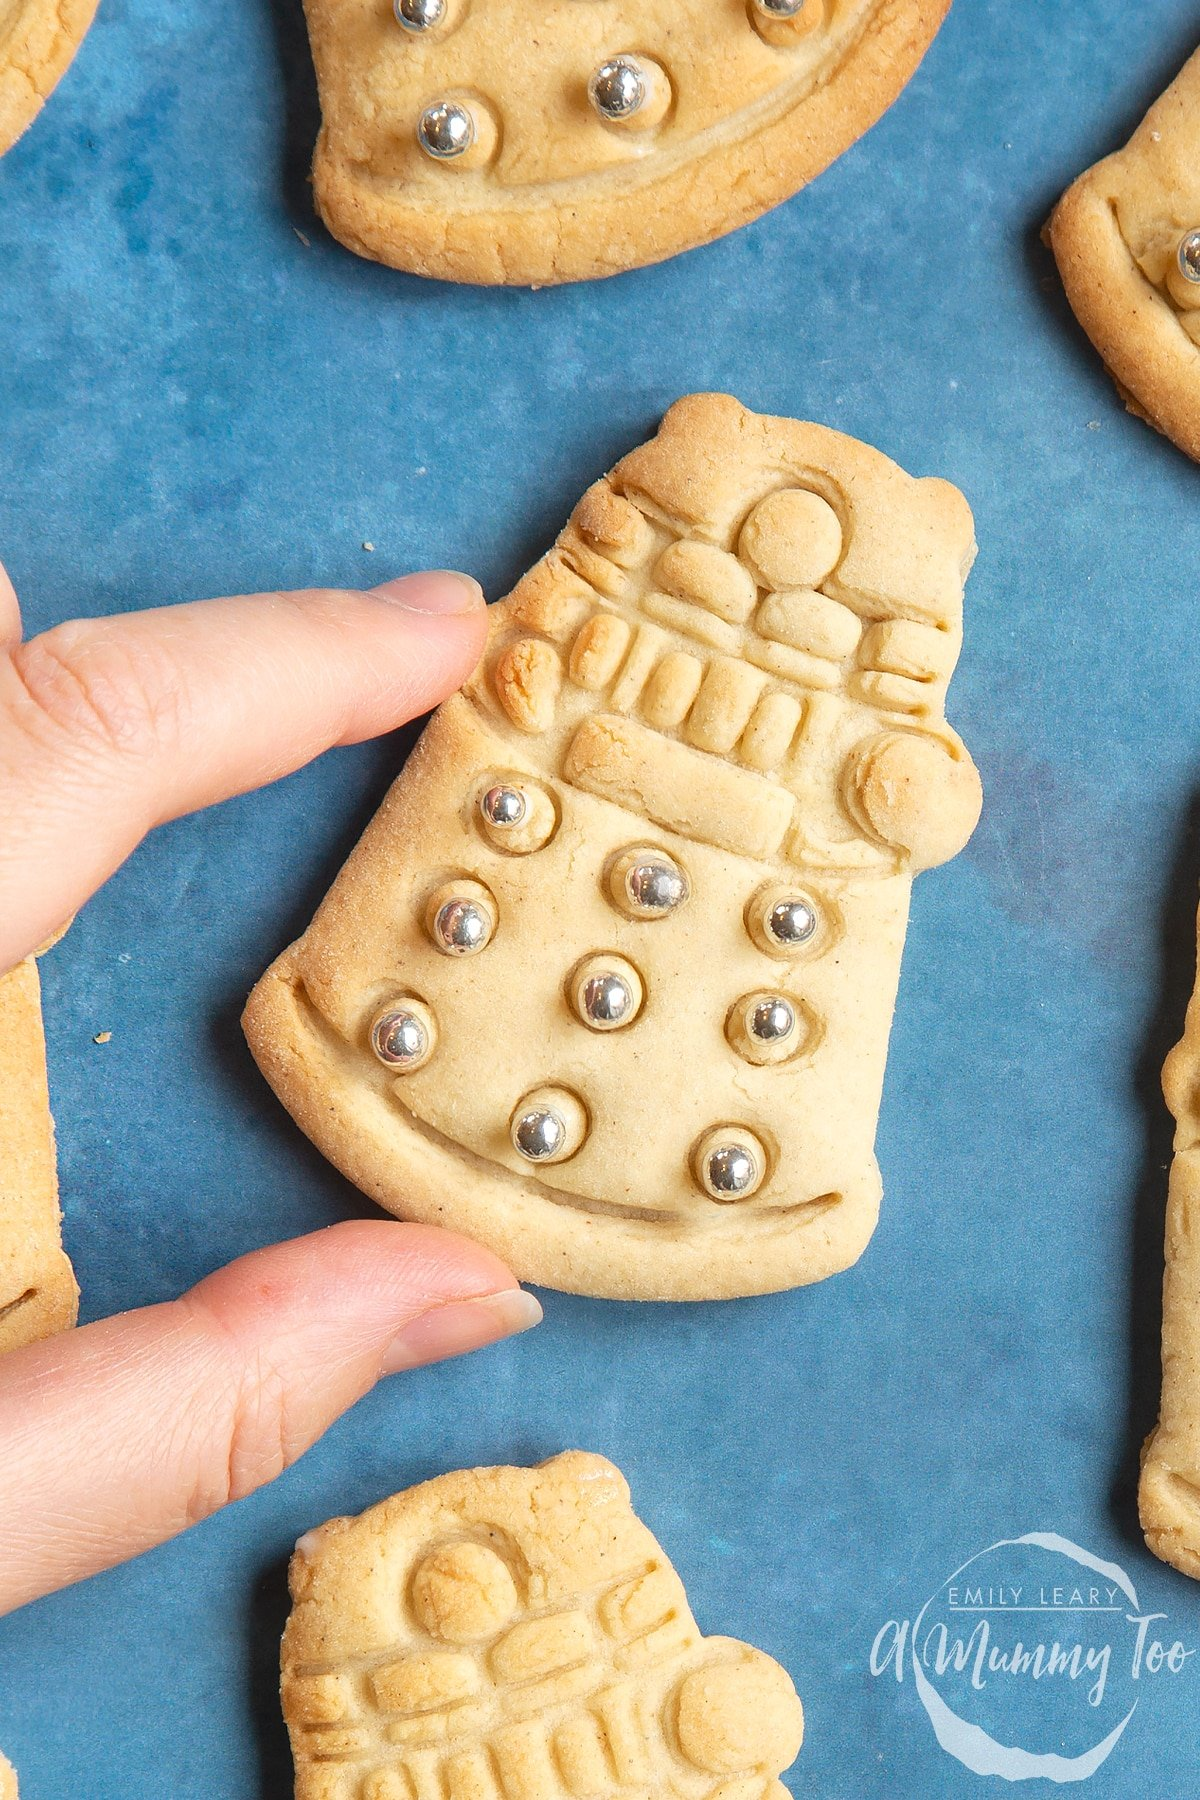 Close up of a Dalek cookies on a blue background. The cookie is decorated with edible silver candy balls. A hand reaches to take it.